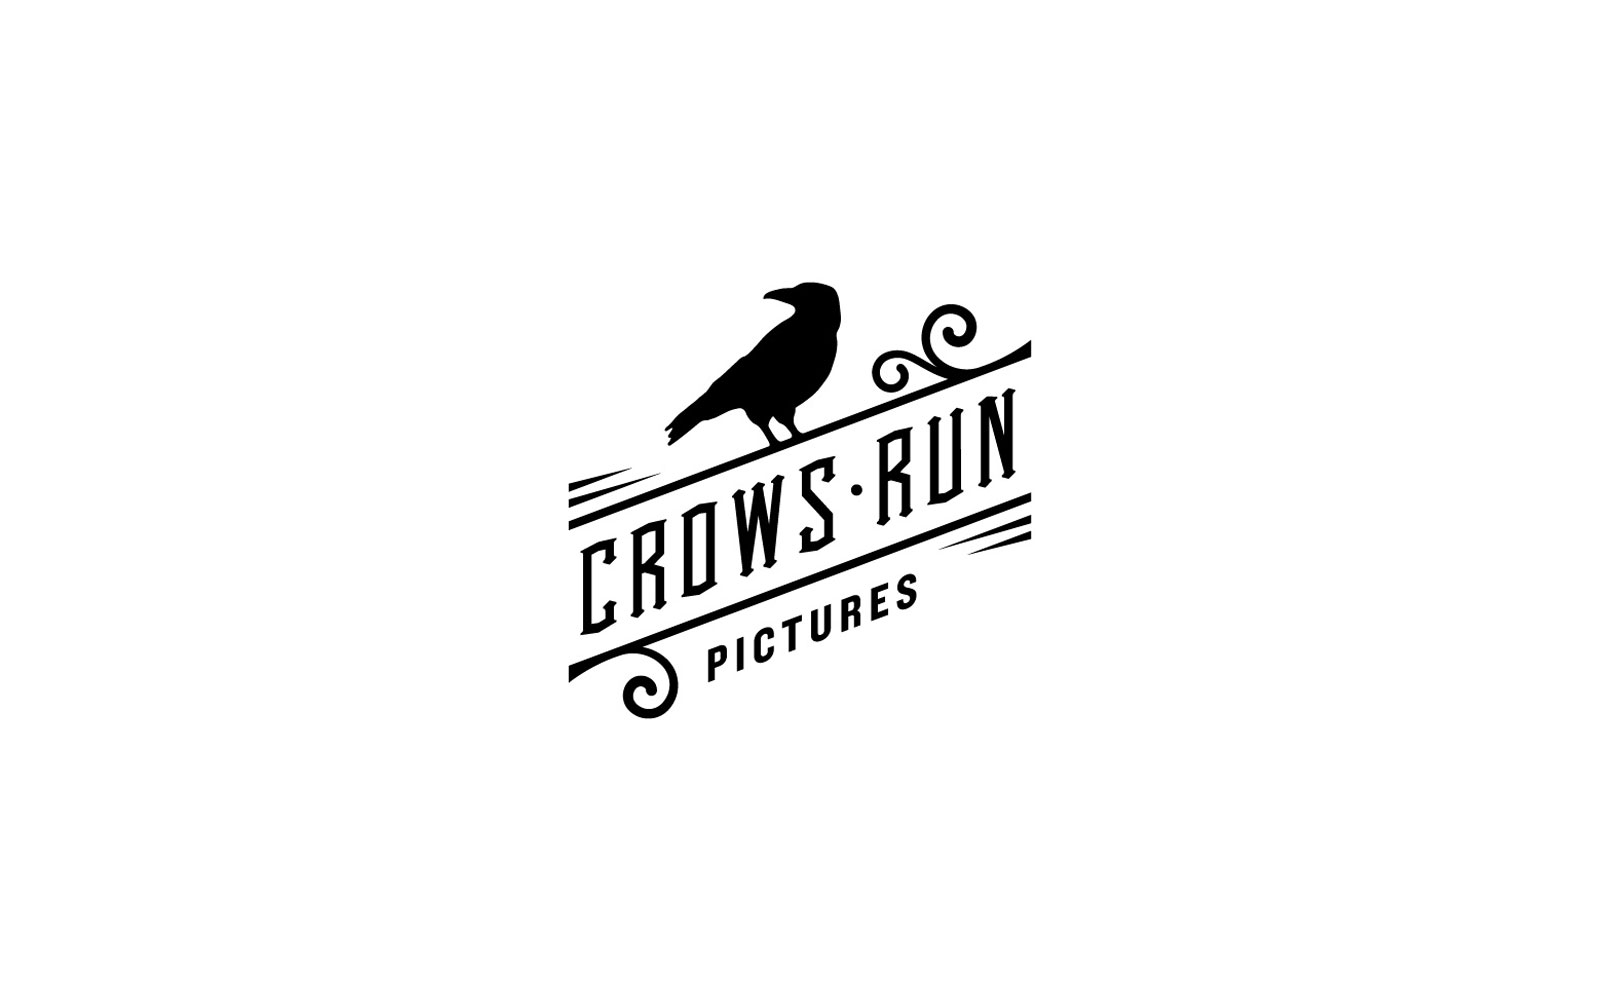 Crowsrun logo 01primary